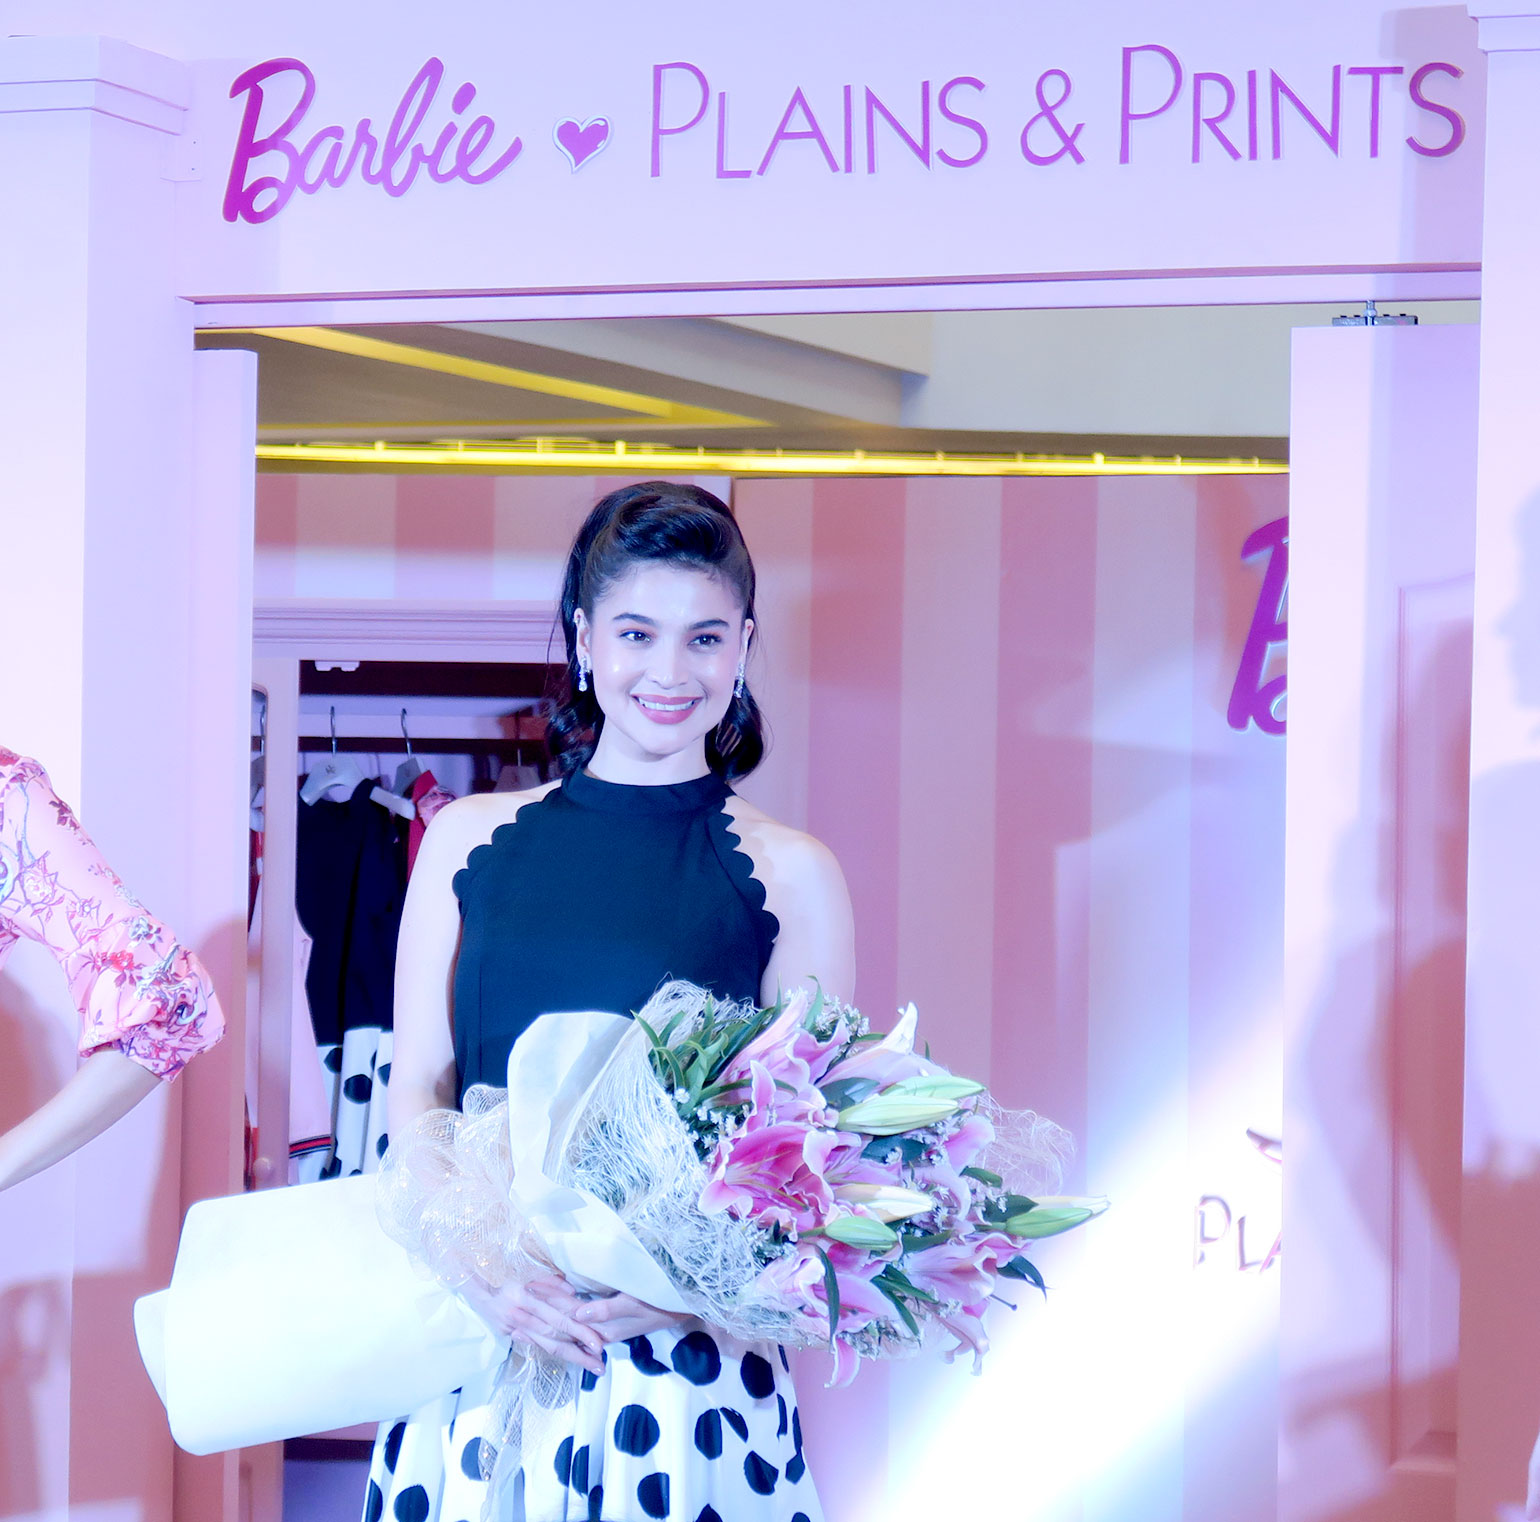 18 Plains and Prints x Barbie Collection - Gen-zel She Sings Beauty